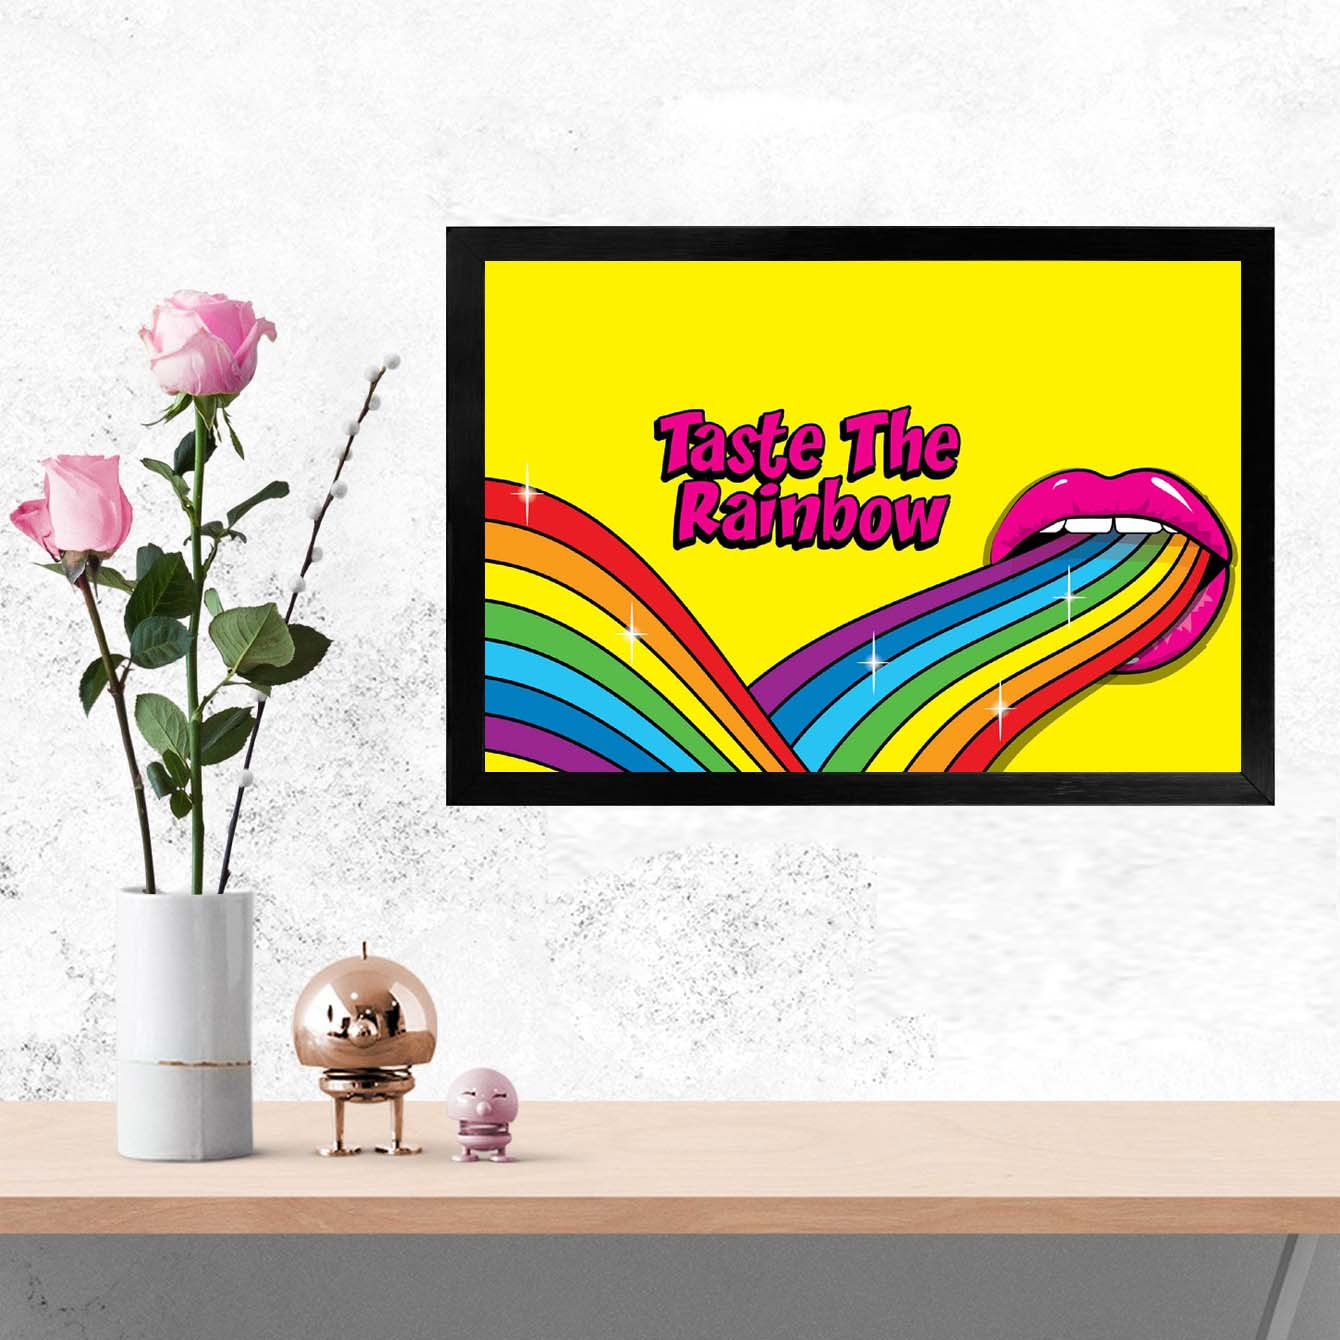 Taste the Rainbow Pop Art Glass Framed Posters & Artprints